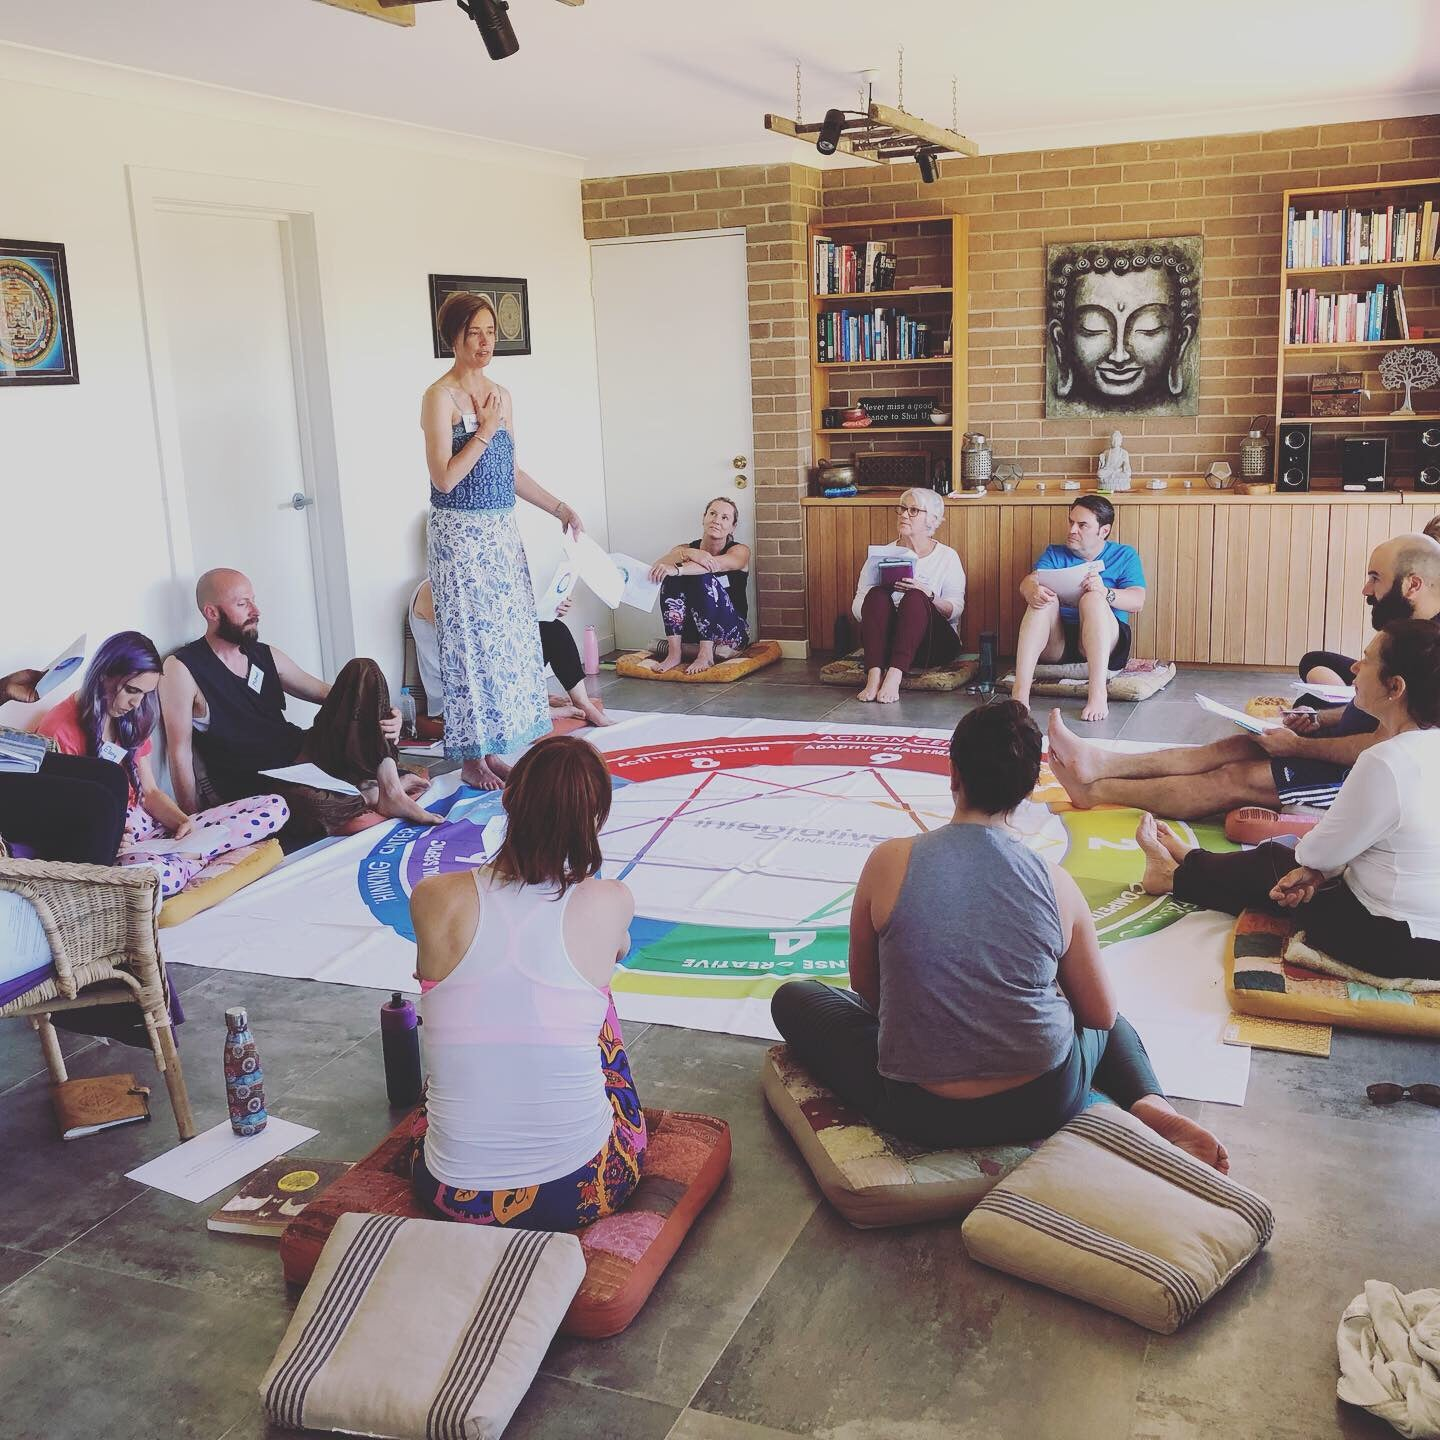 Fully Booked - 'Explore Yourself & Free Yourself' - One day Enneagram Retreat at Kodama - Sun Aug 9th 2020